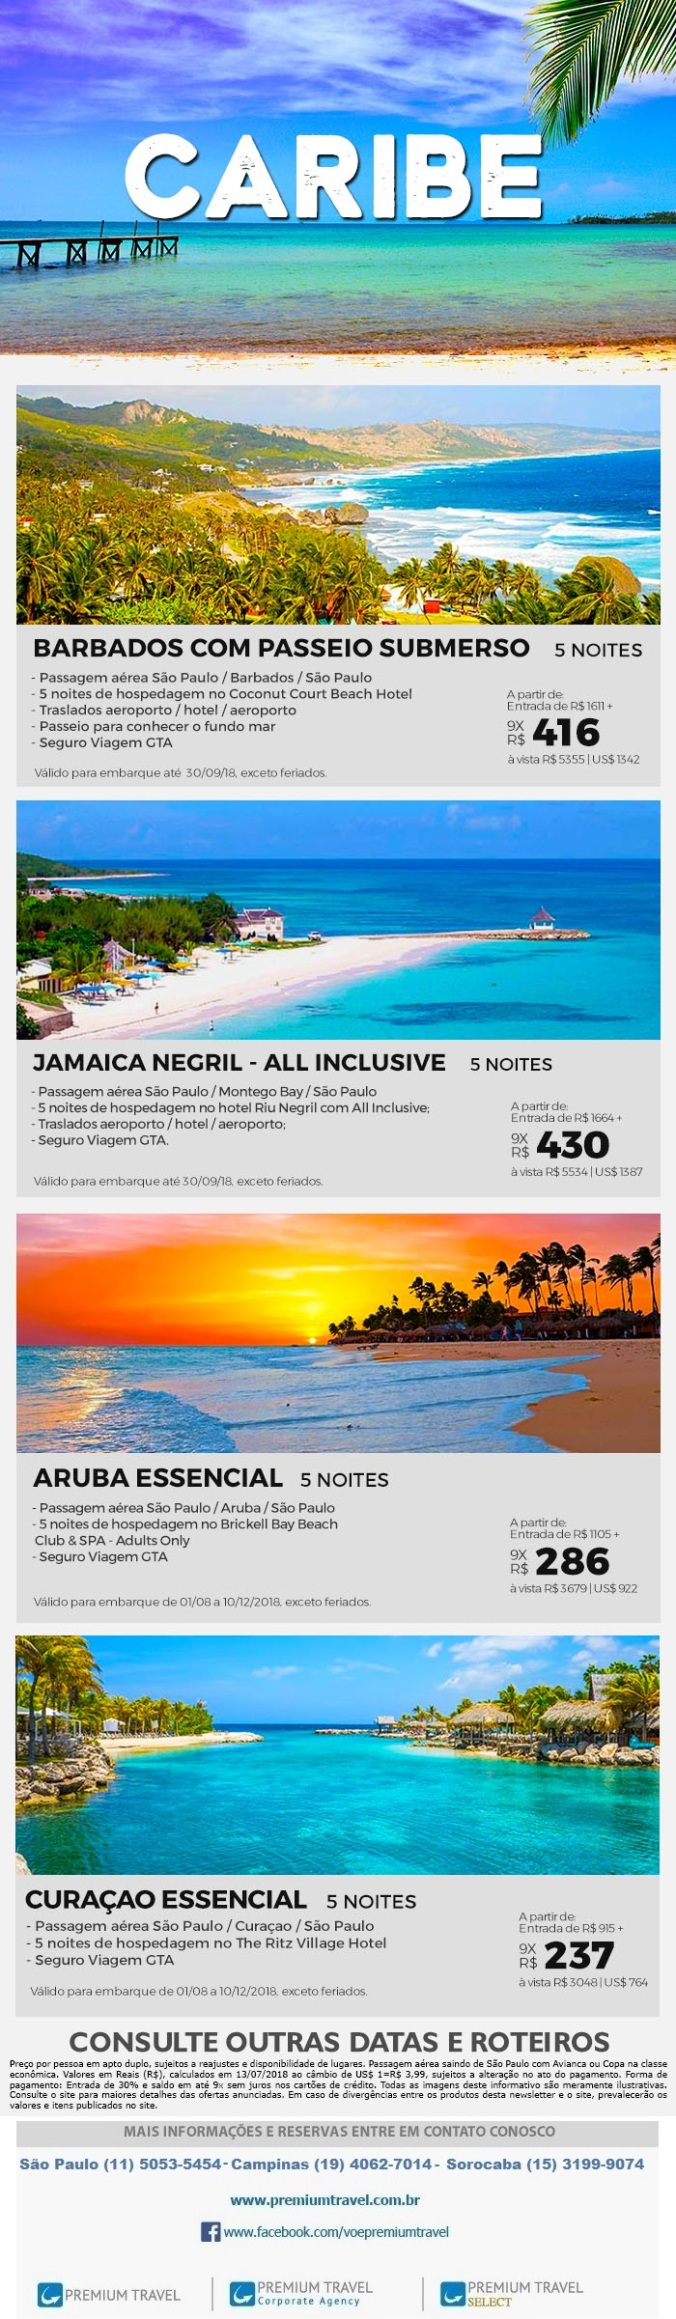 Caribe - Premium Travel